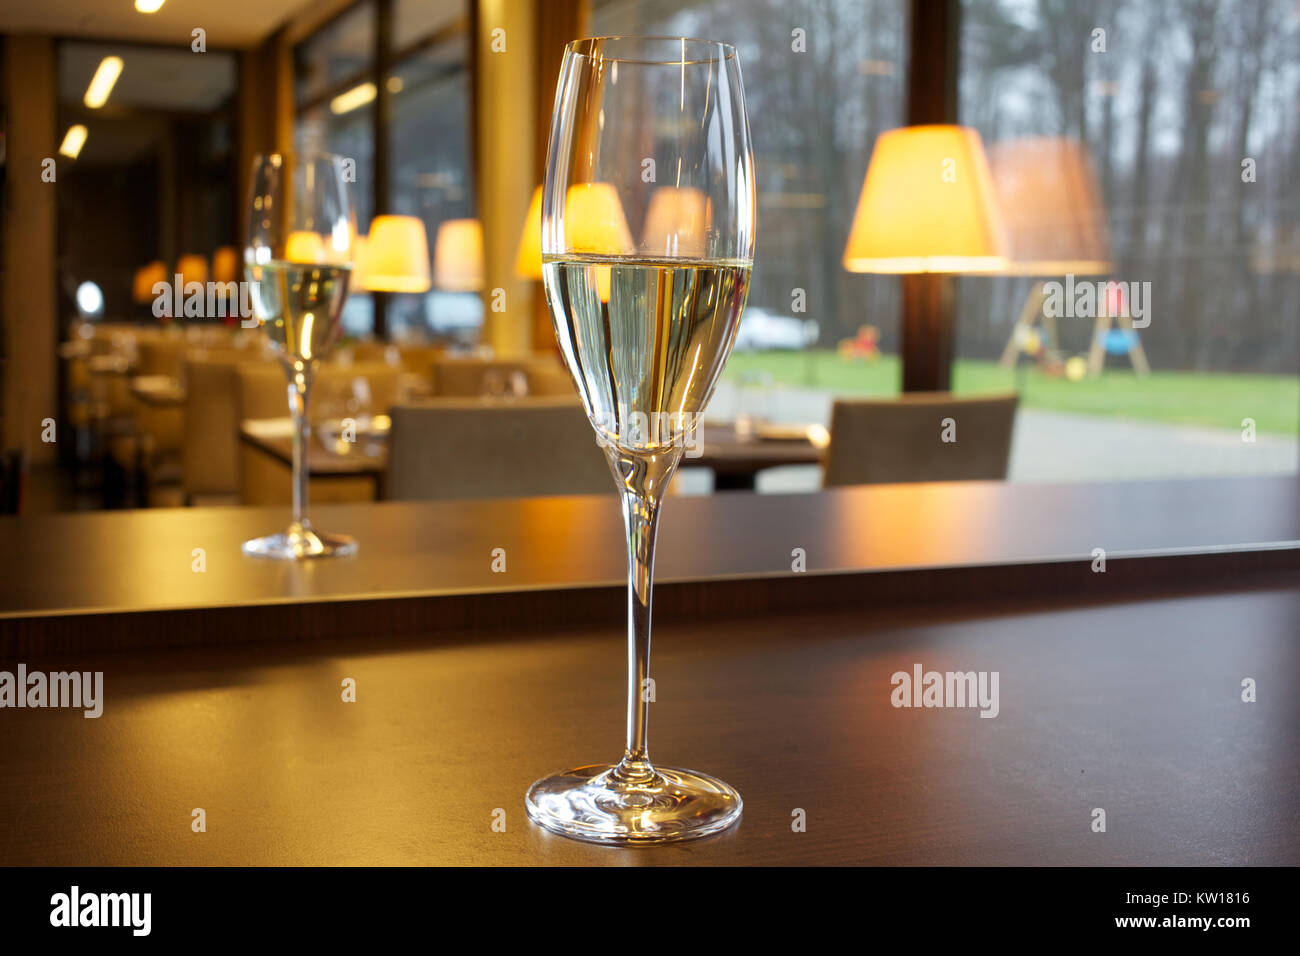 Glass of champagne on the table in the restaurant. - Stock Image